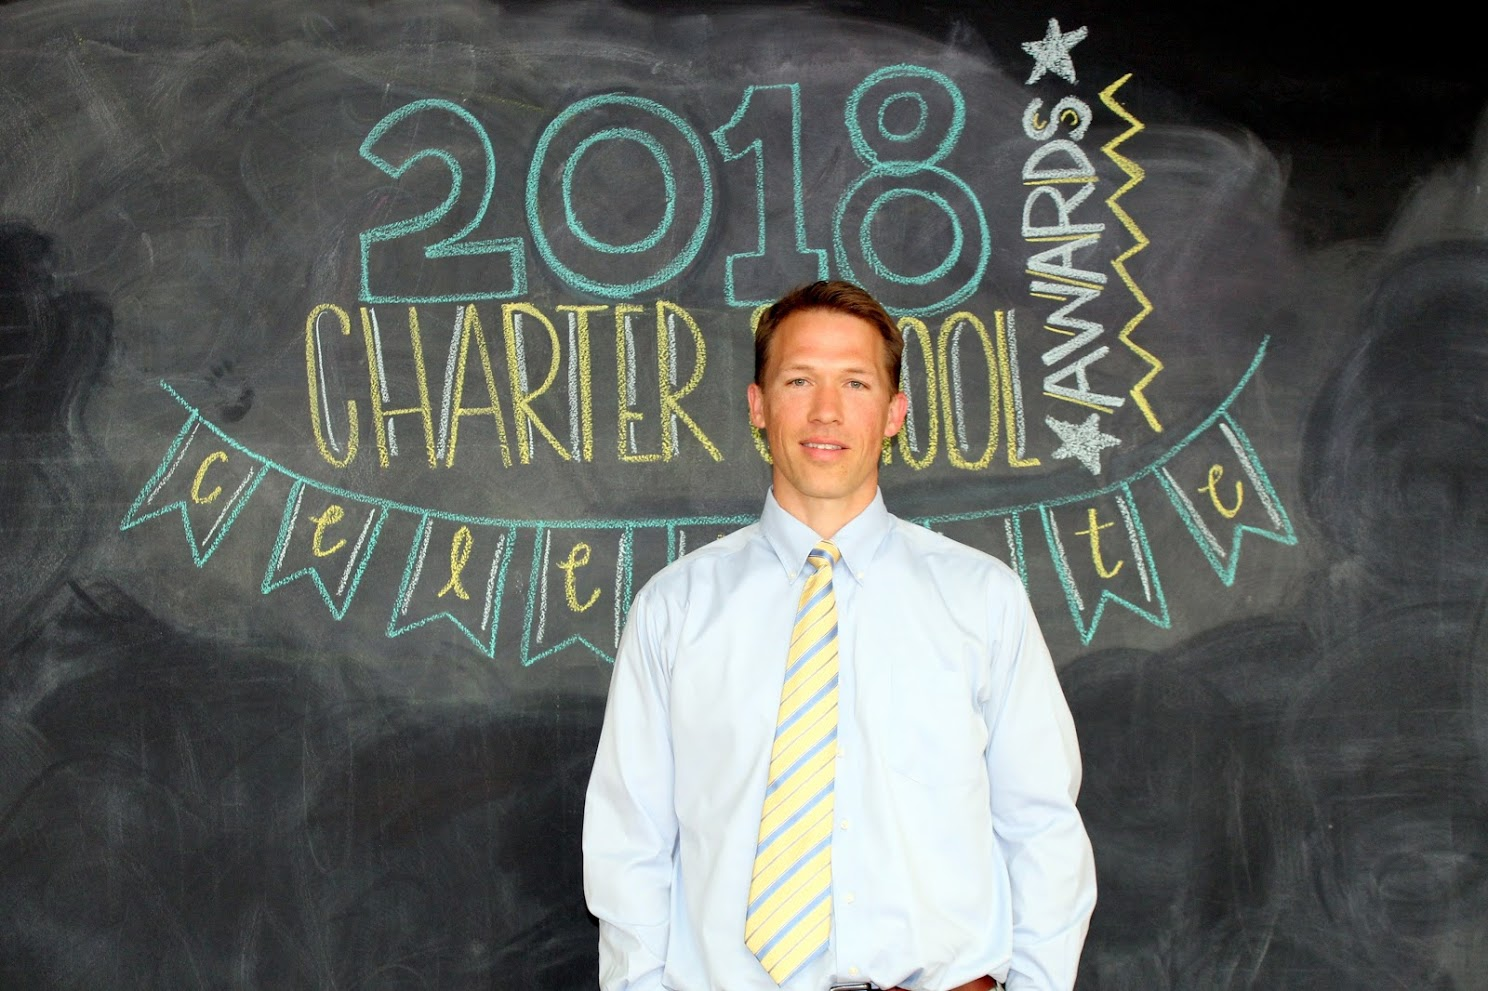 A photo of Joe Griffith, 2018 Charter School Teacher of the Year finalist.